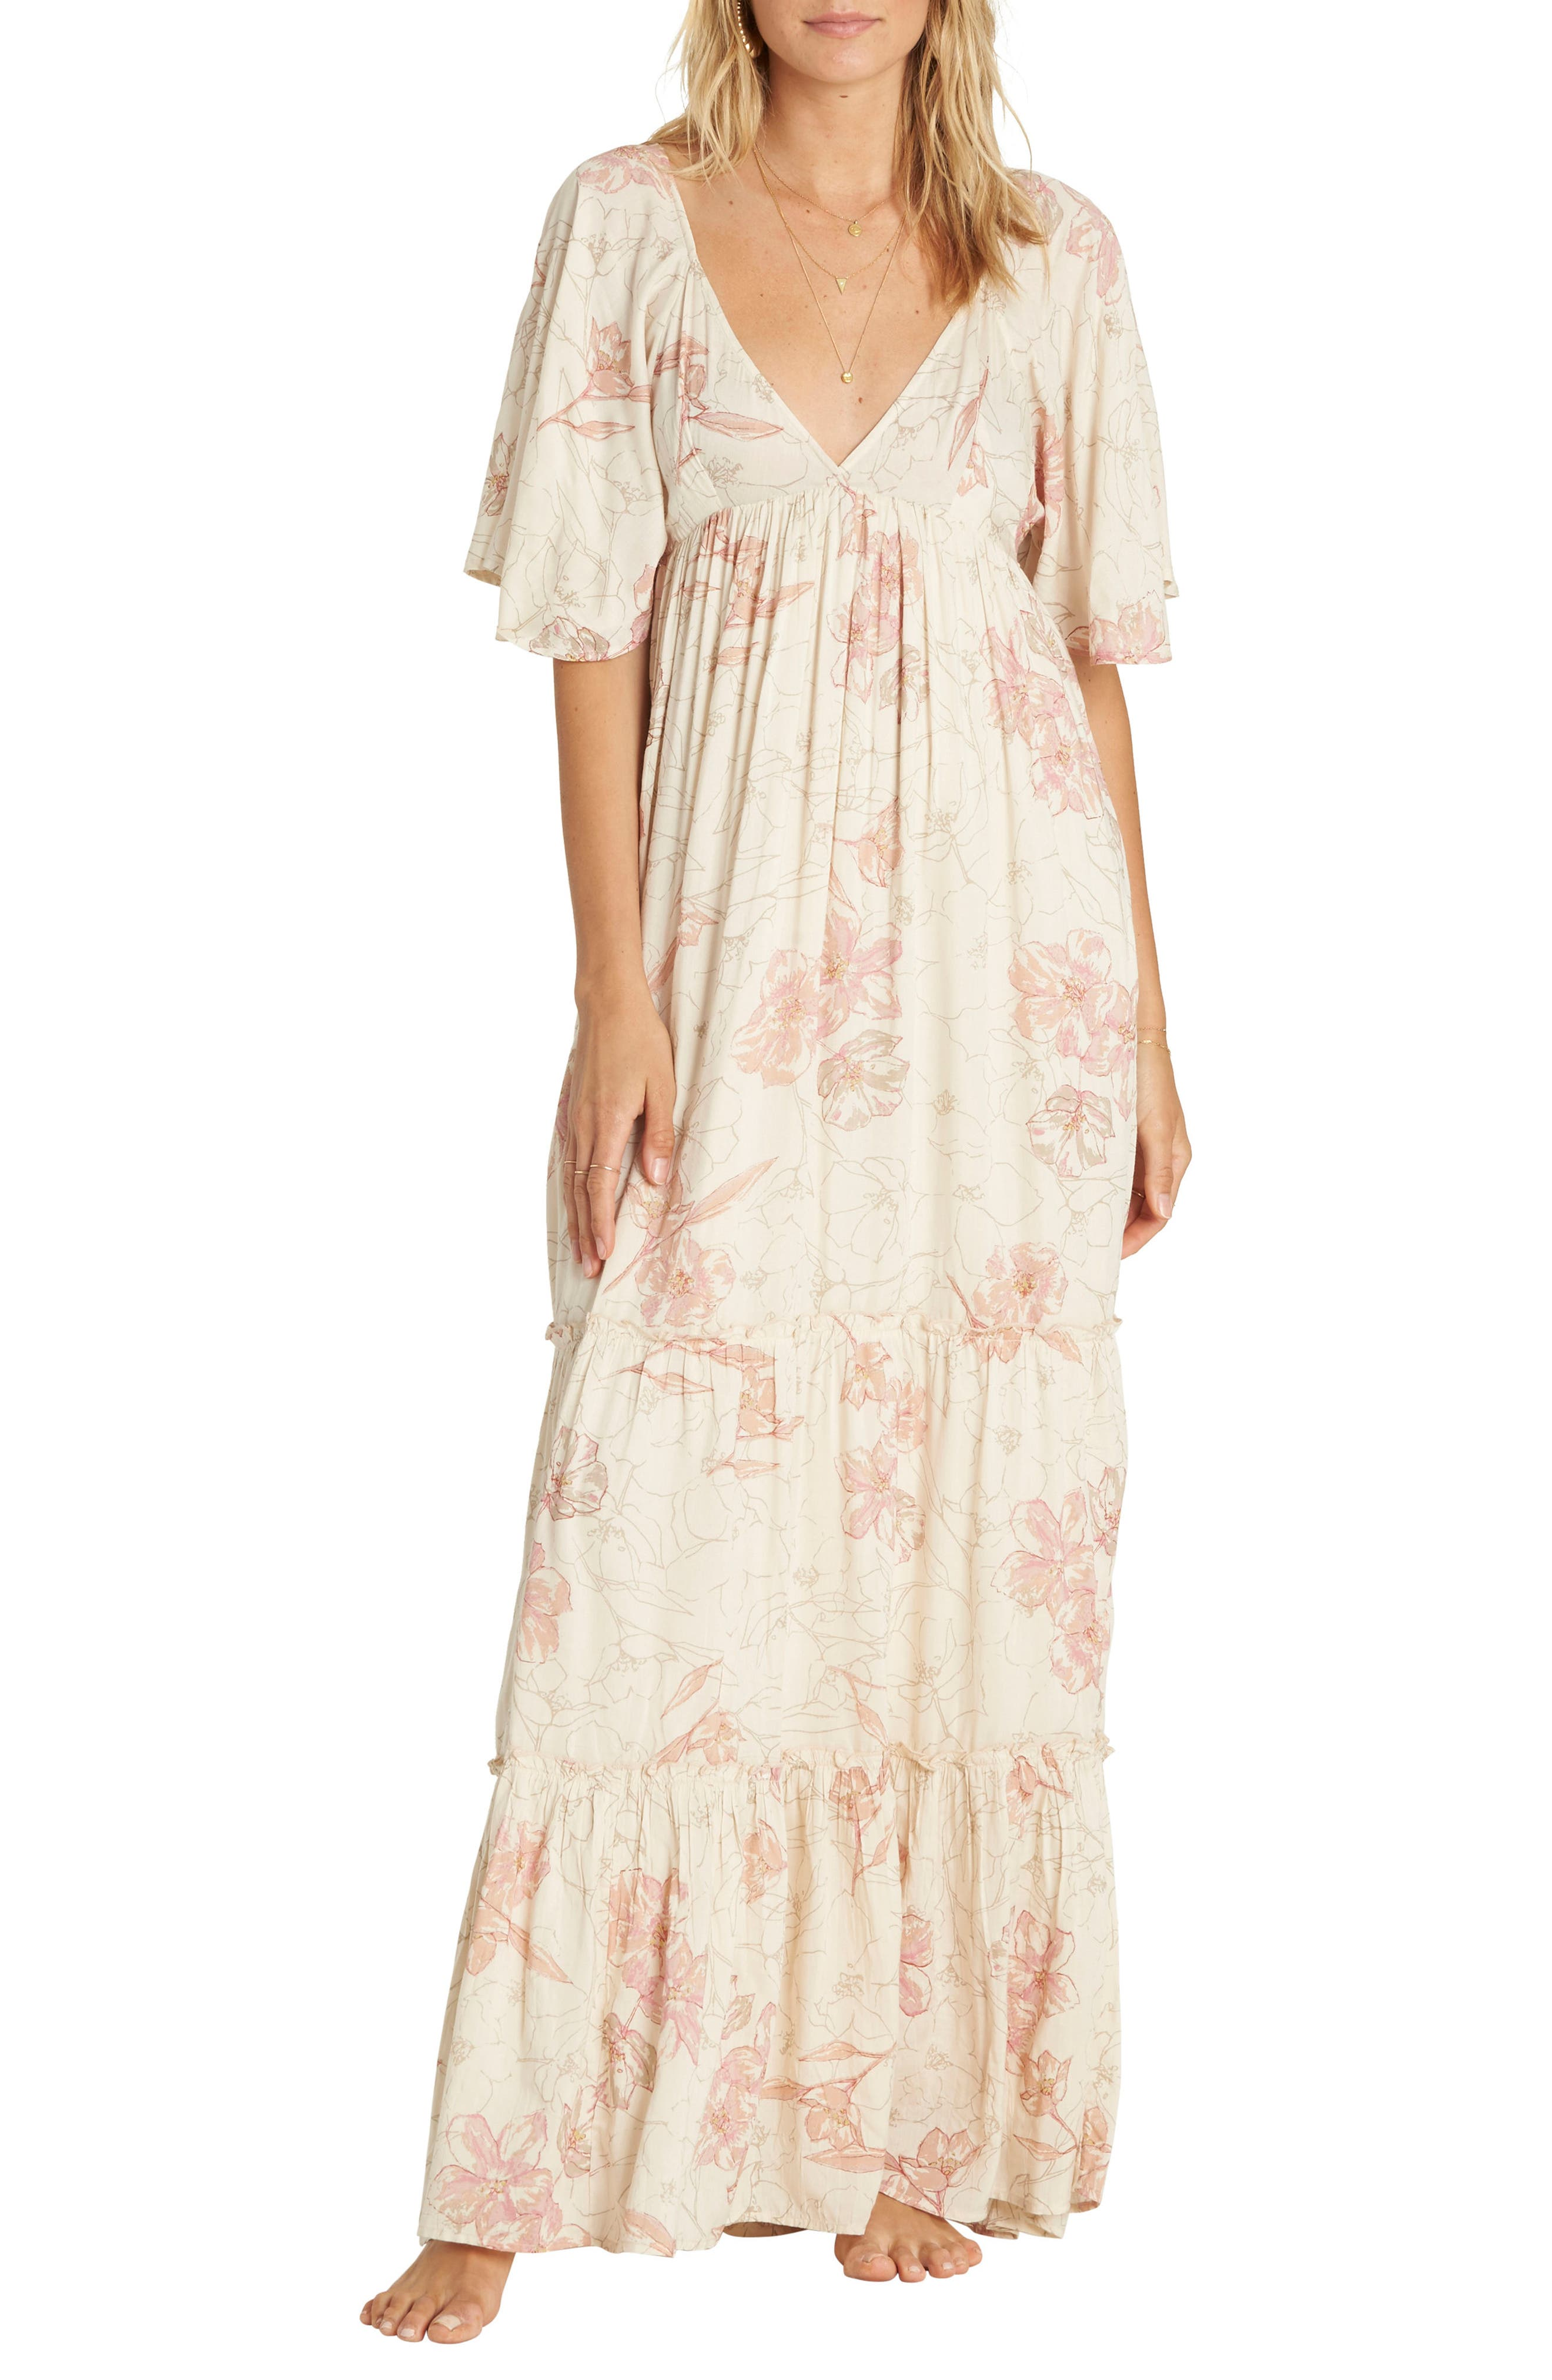 Seas the Day Maxi Dress,                         Main,                         color,